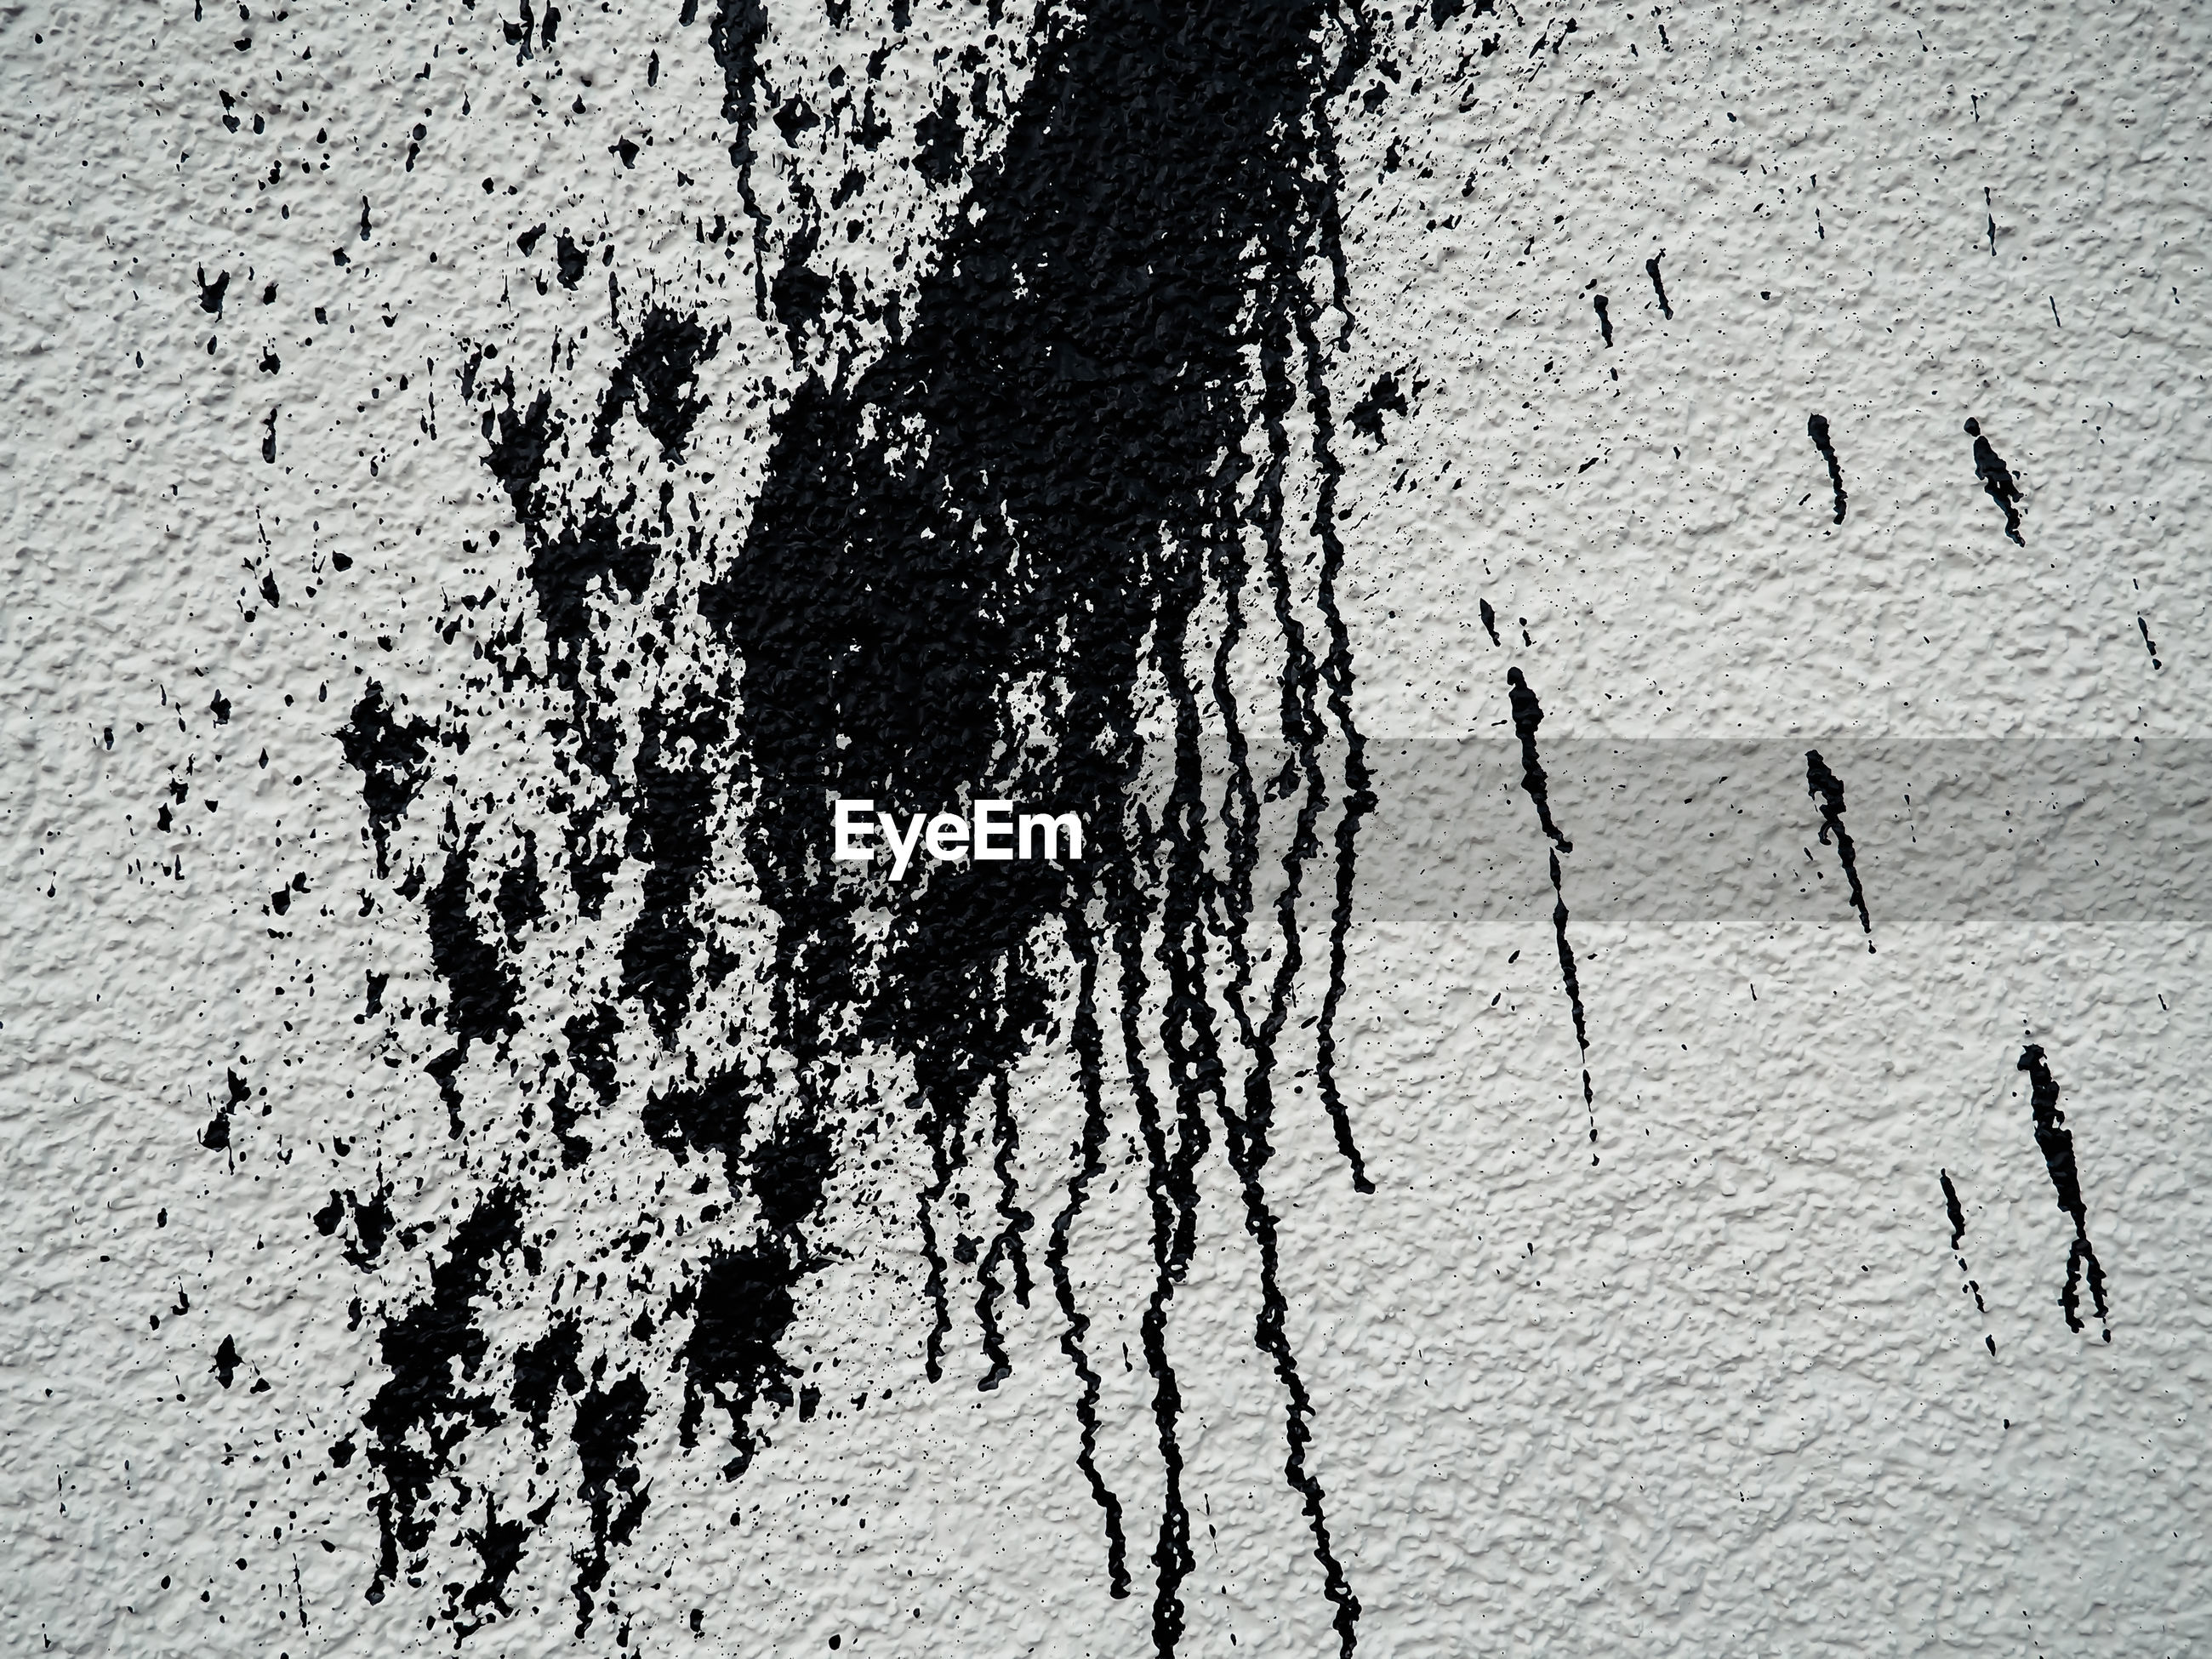 Close-up of spilled paint on wall